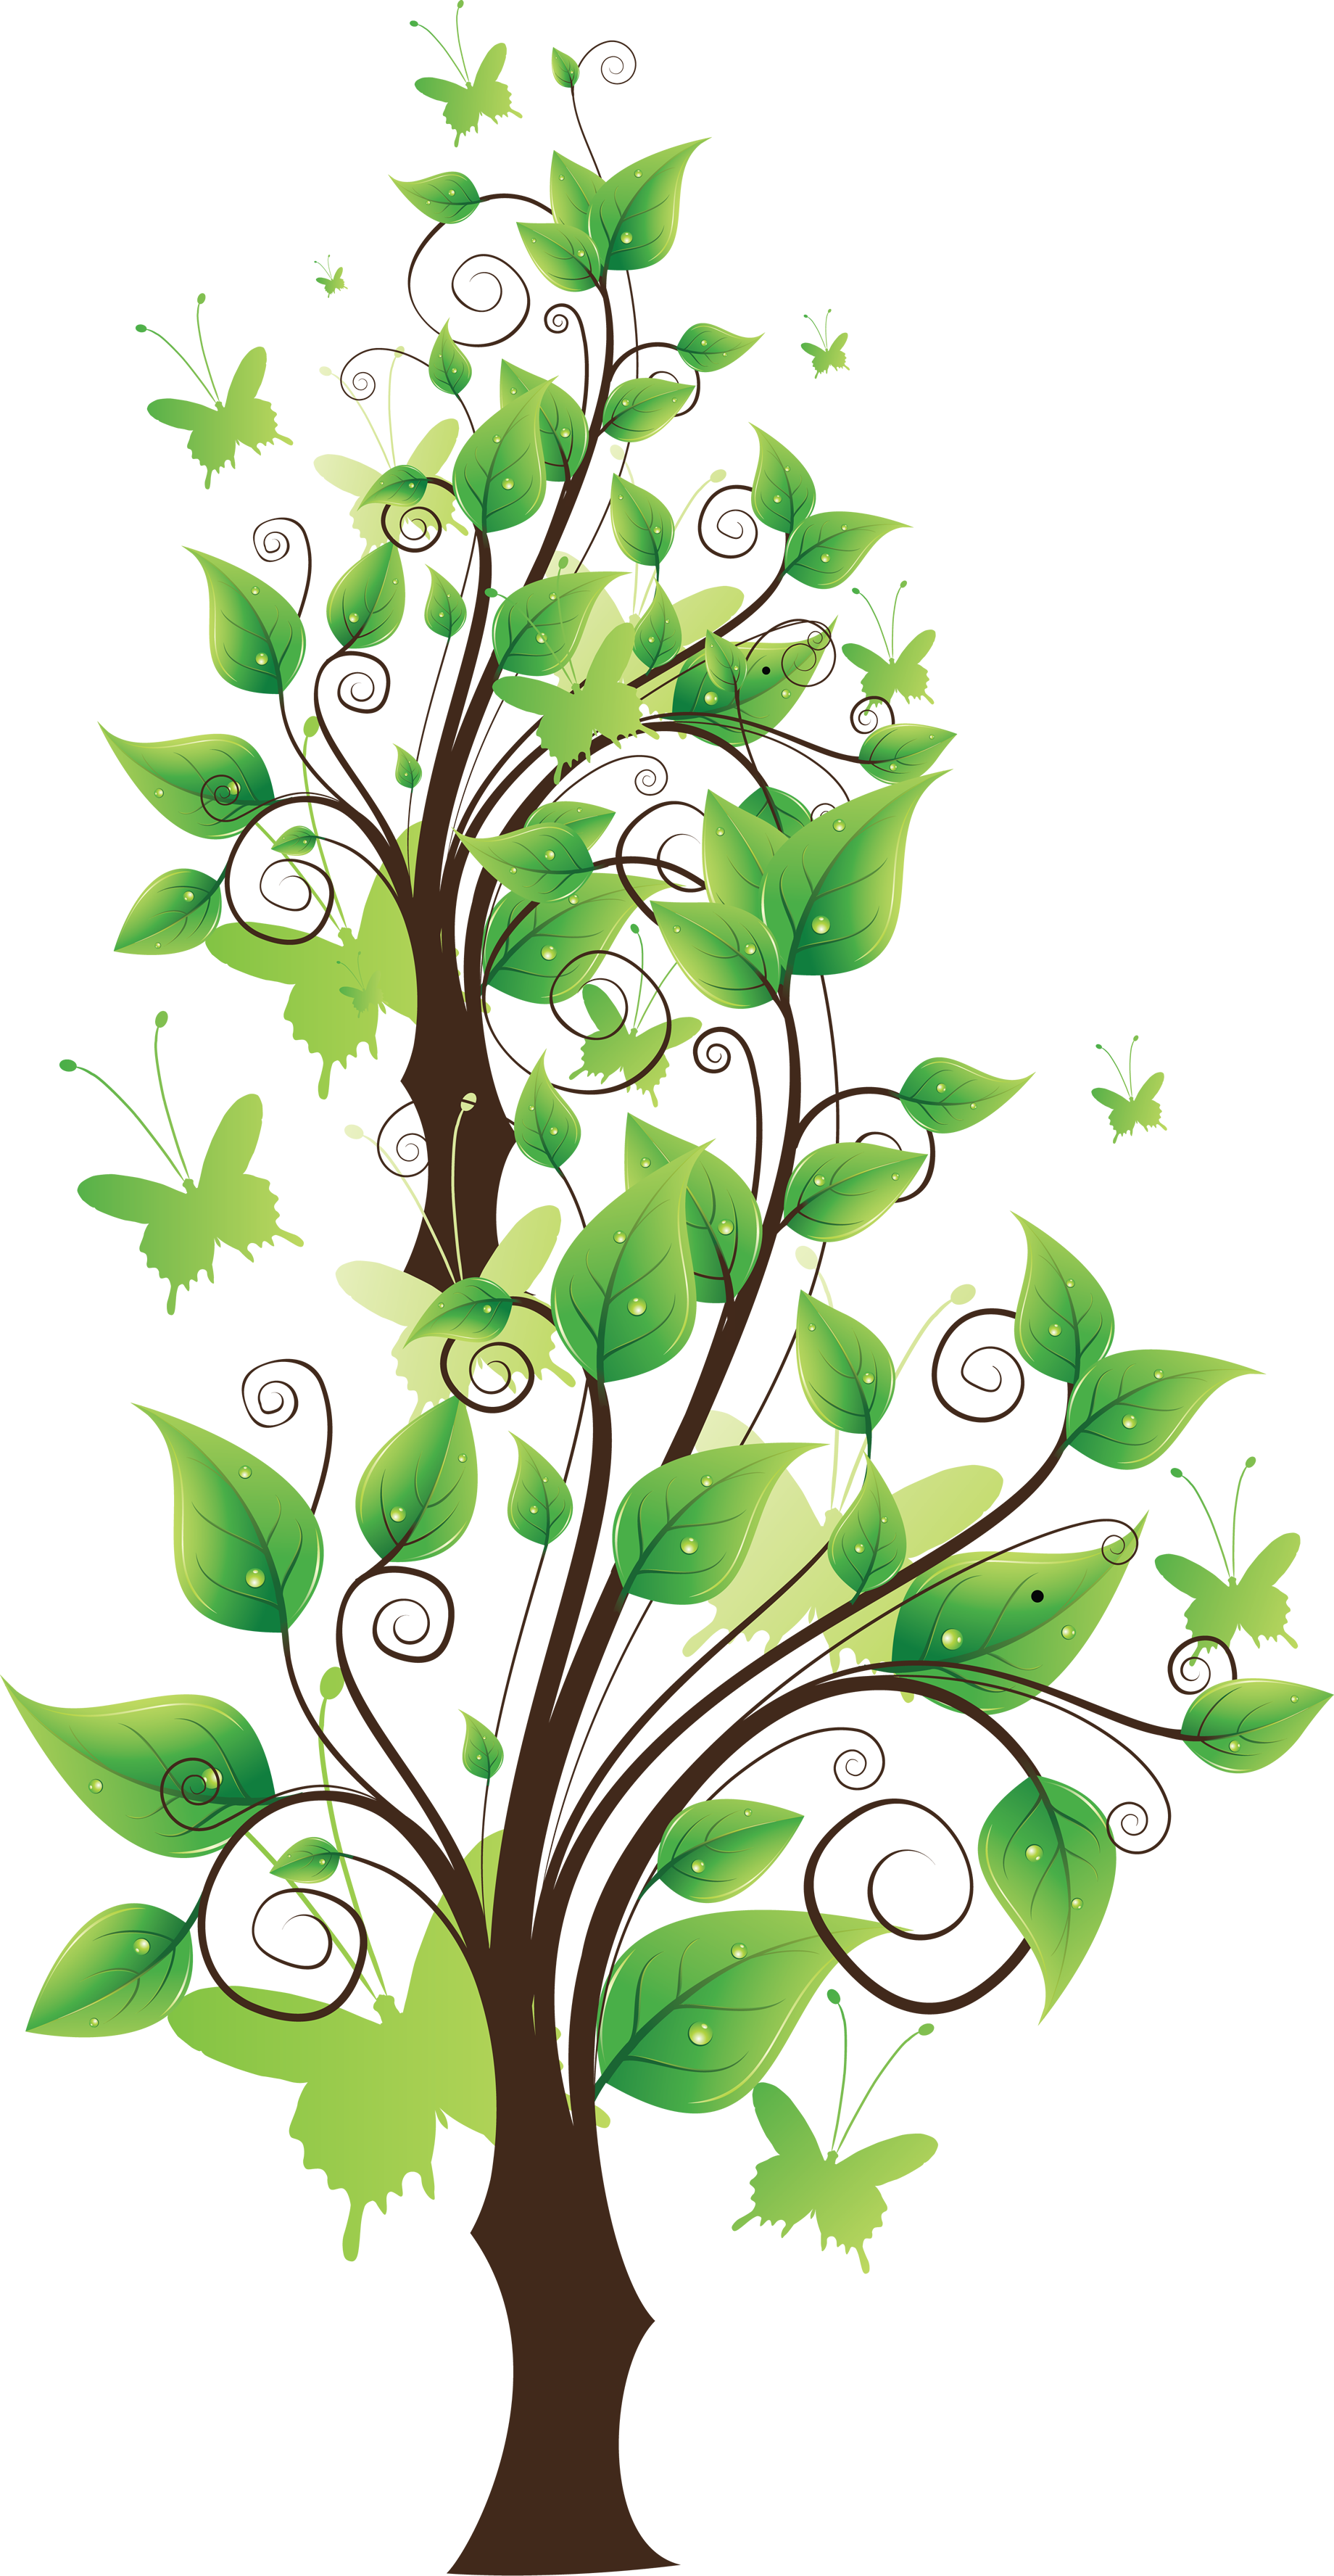 Trees png clipart. Tree image purepng free